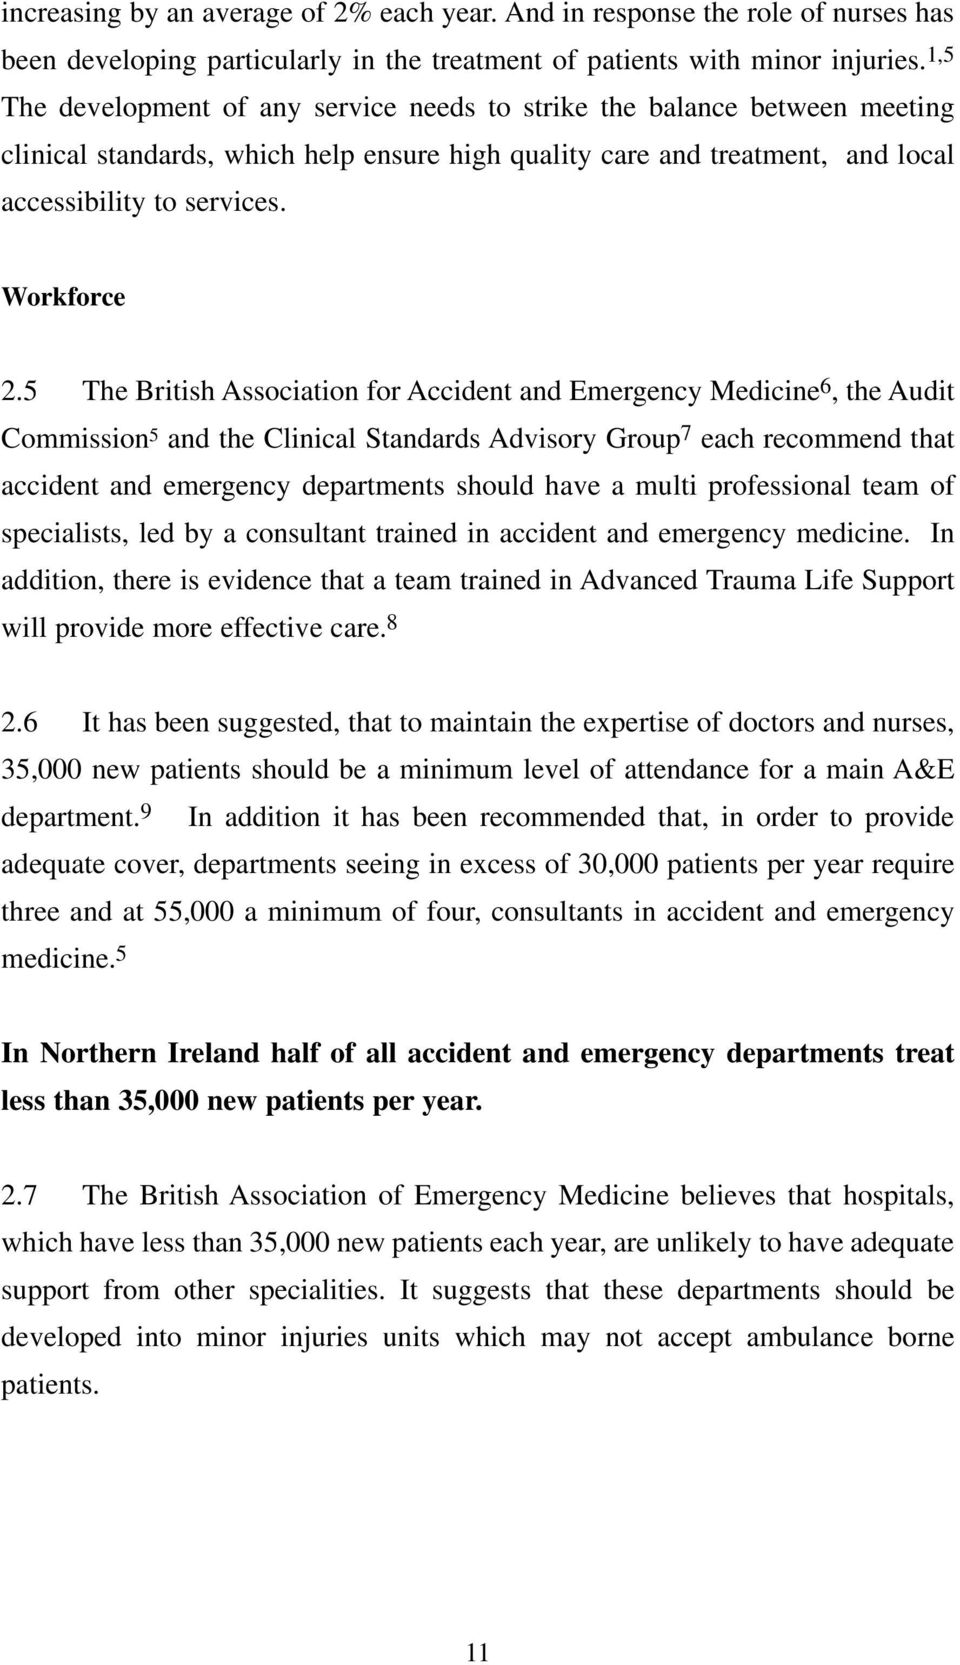 5 The British Association for Accident and Emergency Medicine 6, the Audit Commission 5 and the Clinical Standards Advisory Group 7 each recommend that accident and emergency departments should have